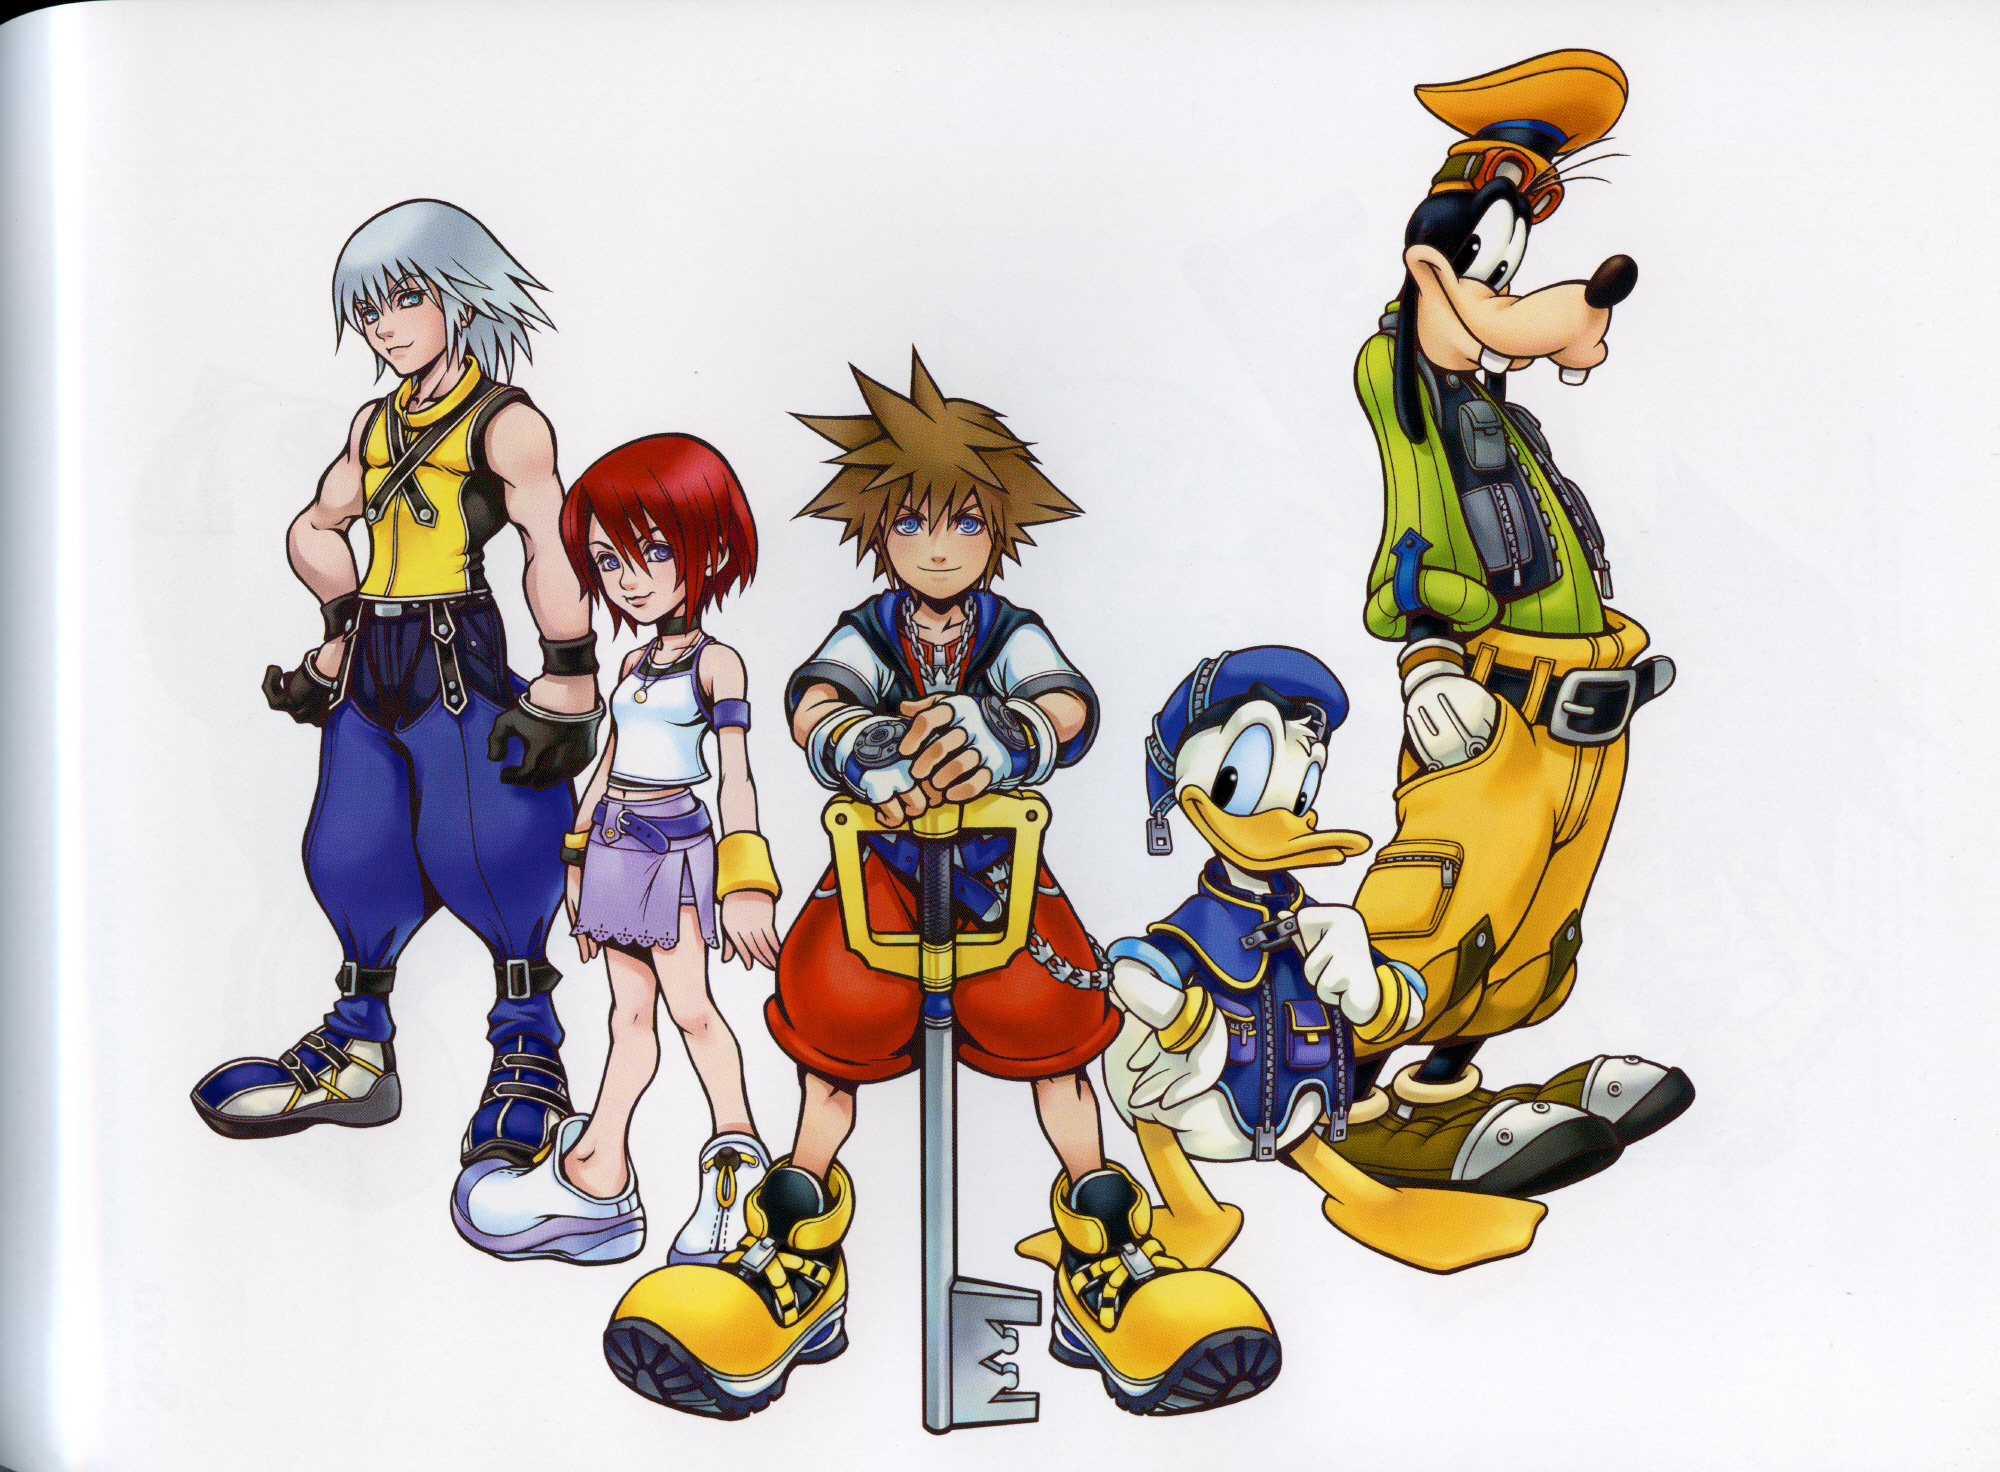 Kingdom hearts phone clipart image black and white Index of /lib/Kingdom Hearts/Kingdom Hearts Artbook image black and white